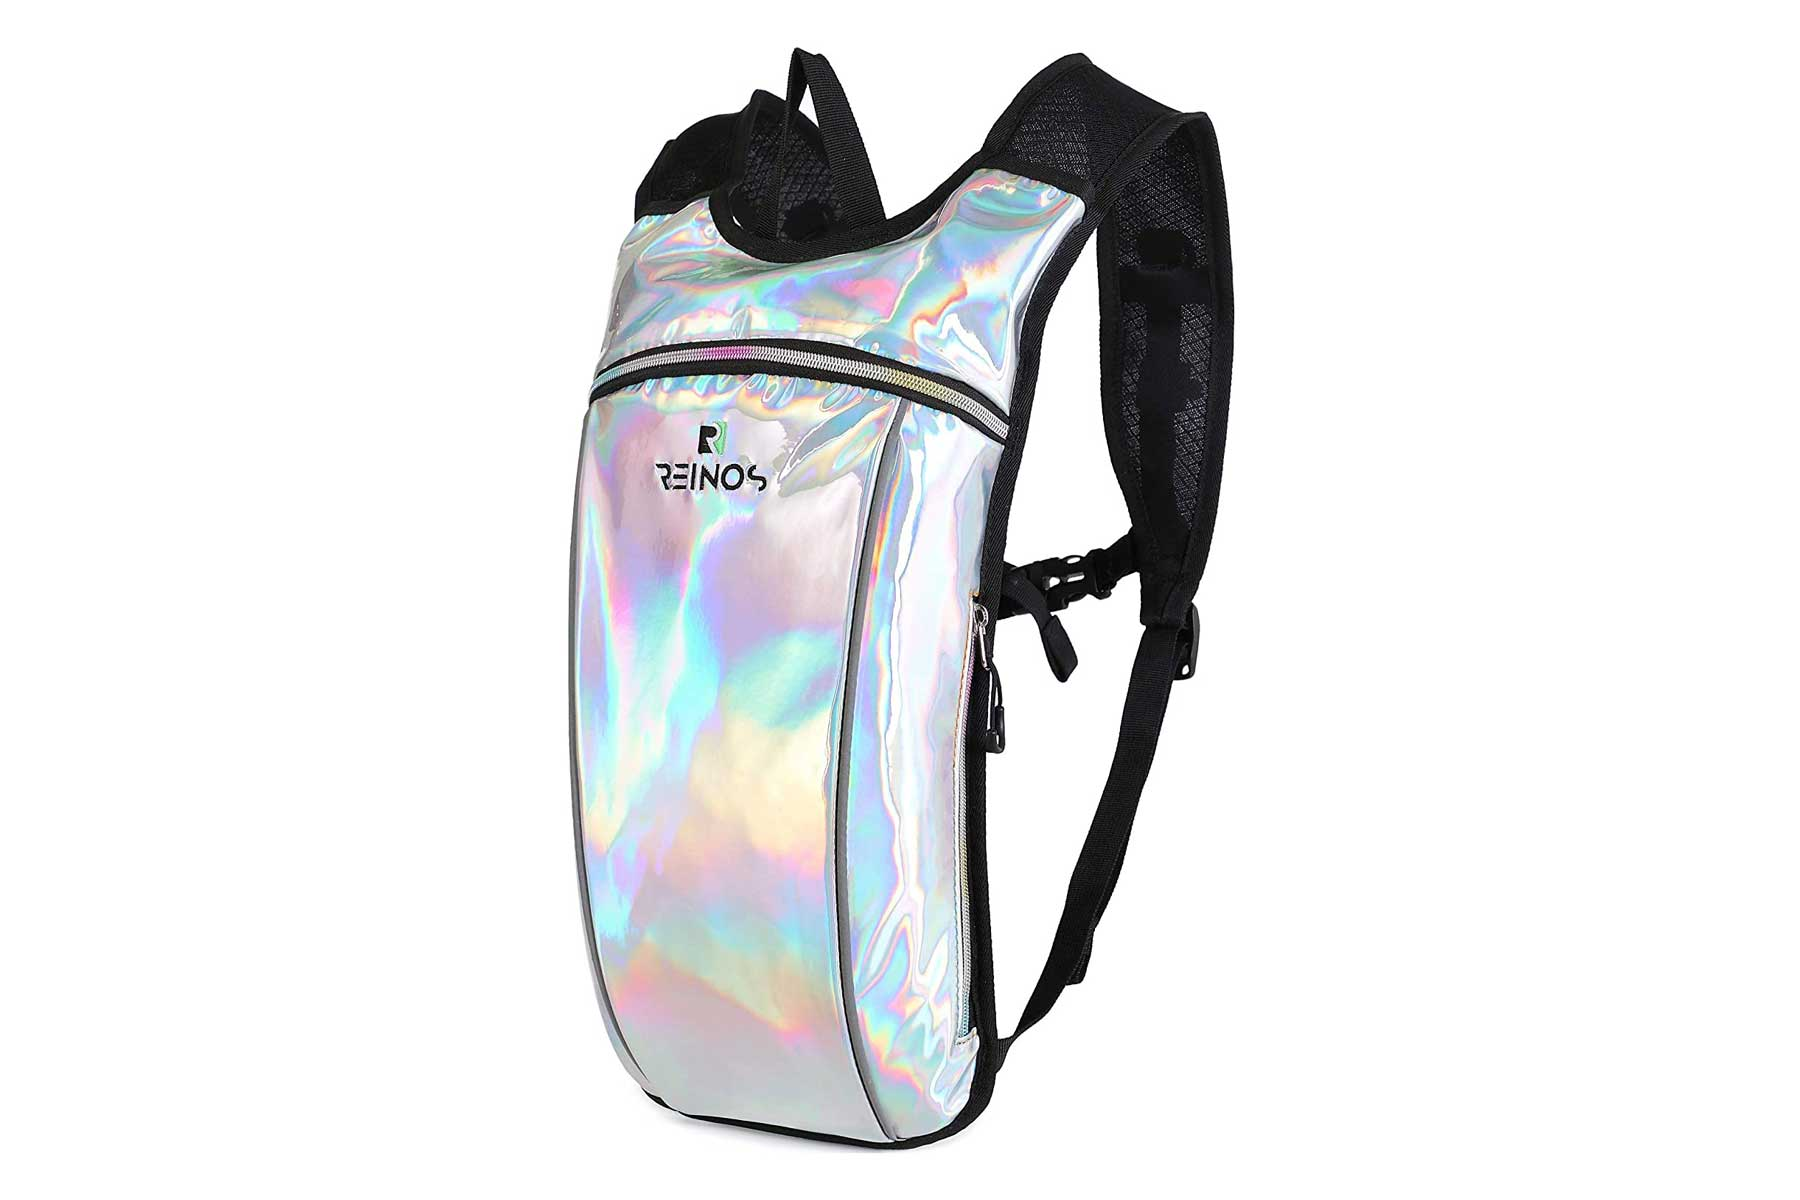 REINOS Hydration Pack